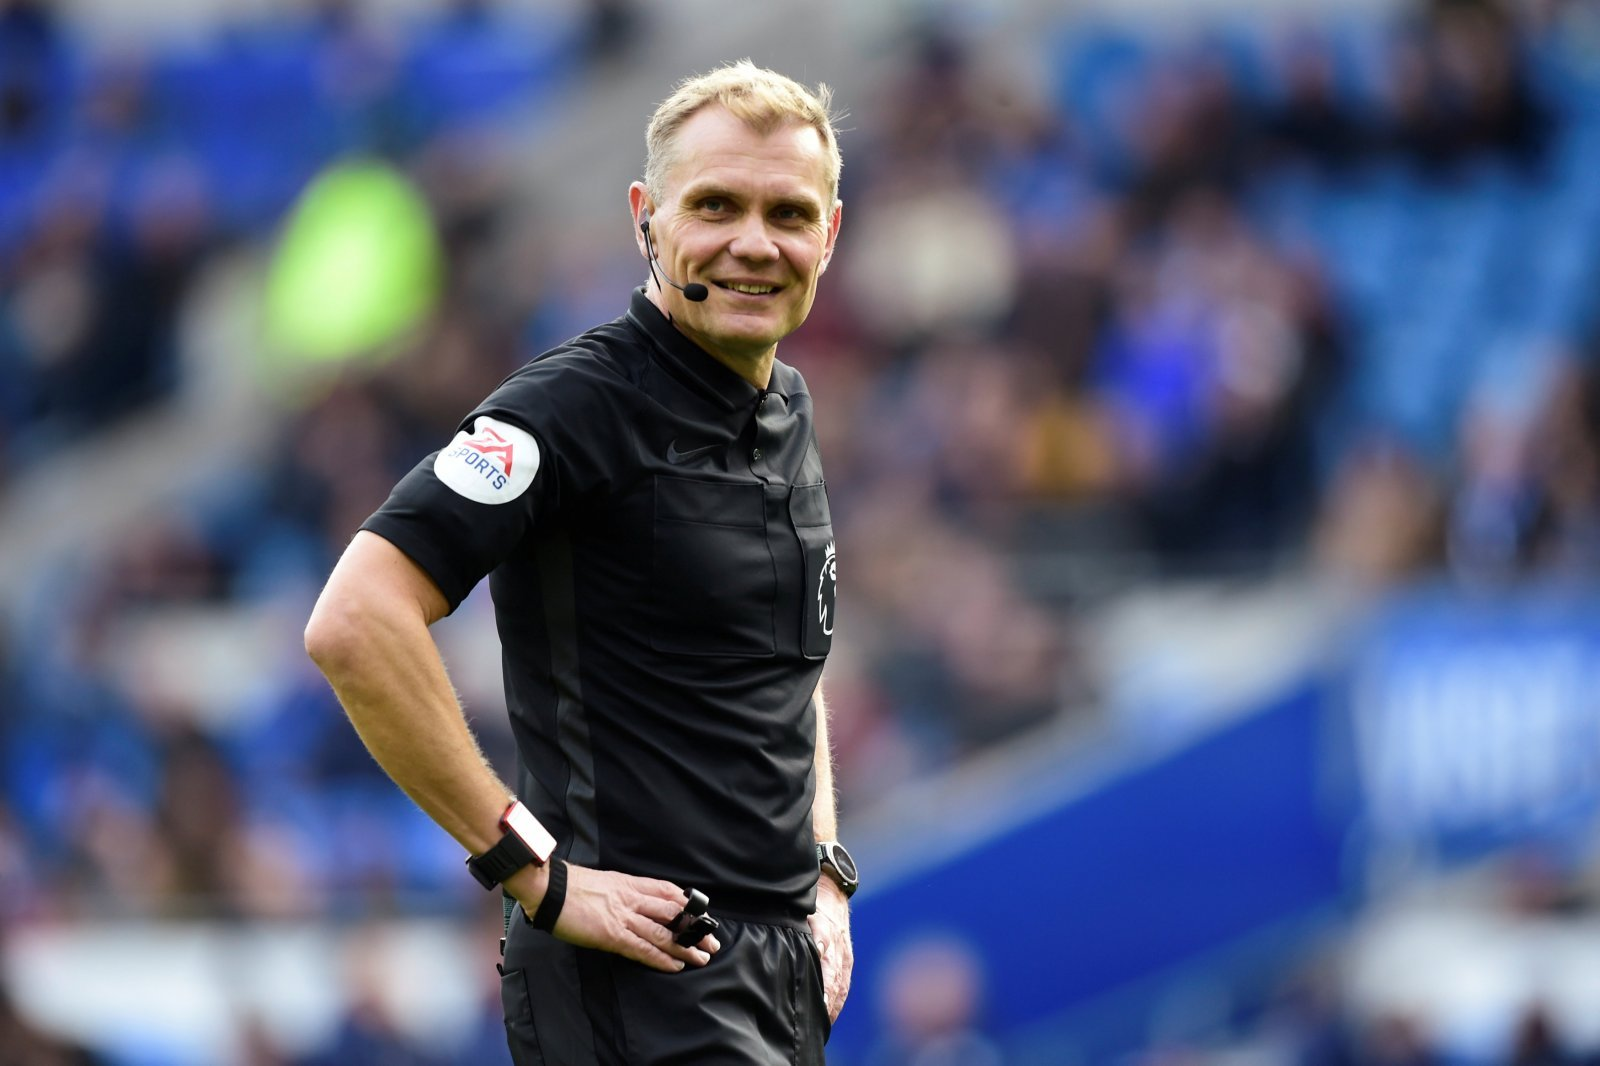 Newcastle United: Scott named referee for Watford encounter positive for Magpies